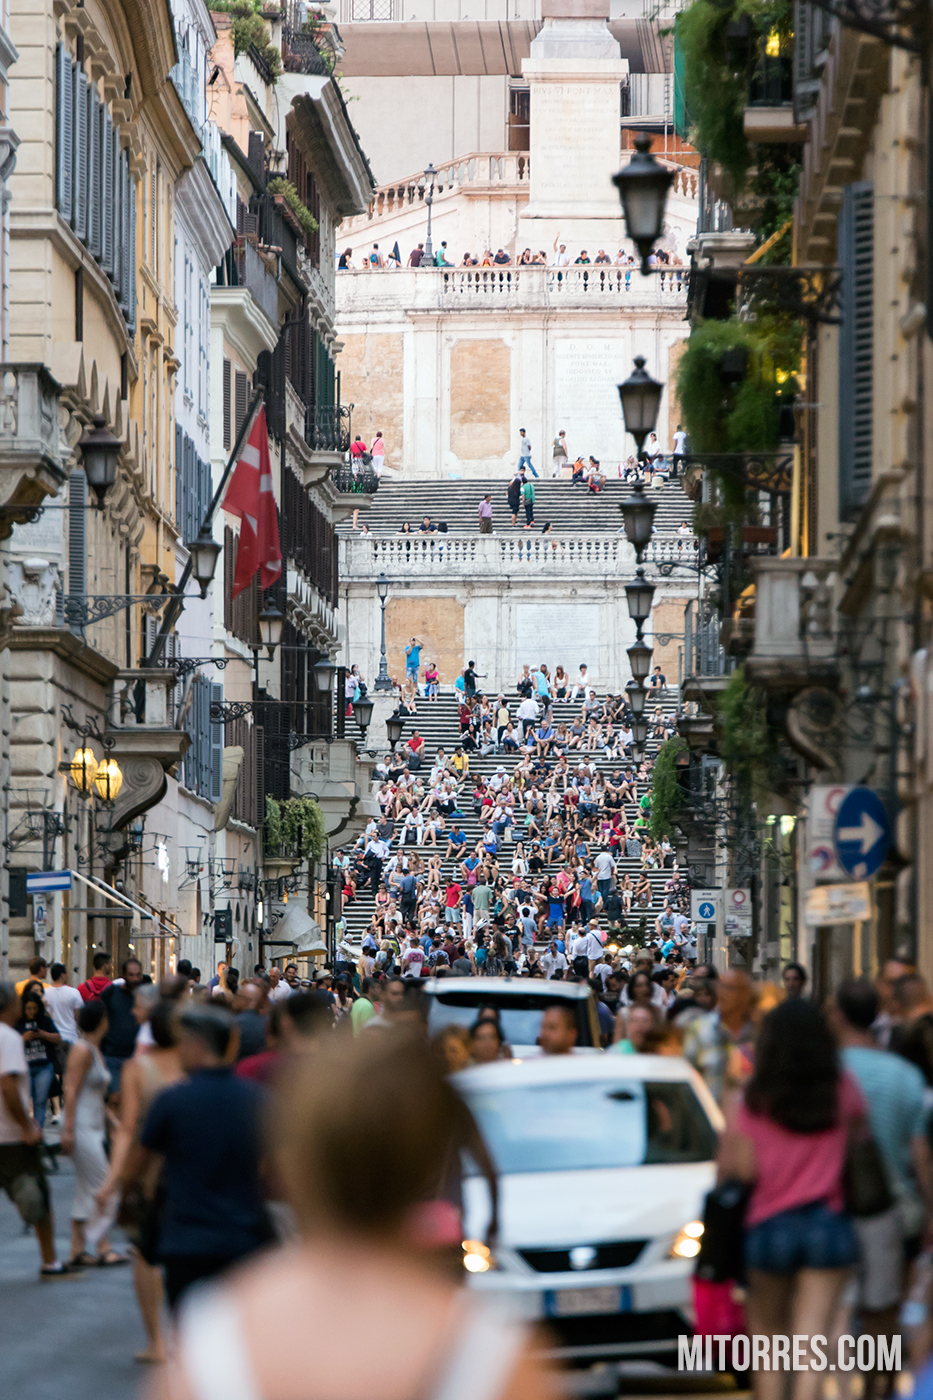 A view of the Spanish Steps from intersection of Via del Corso and Via dei Condotti in Rome, Italy. Photo: Marlon I. Torres